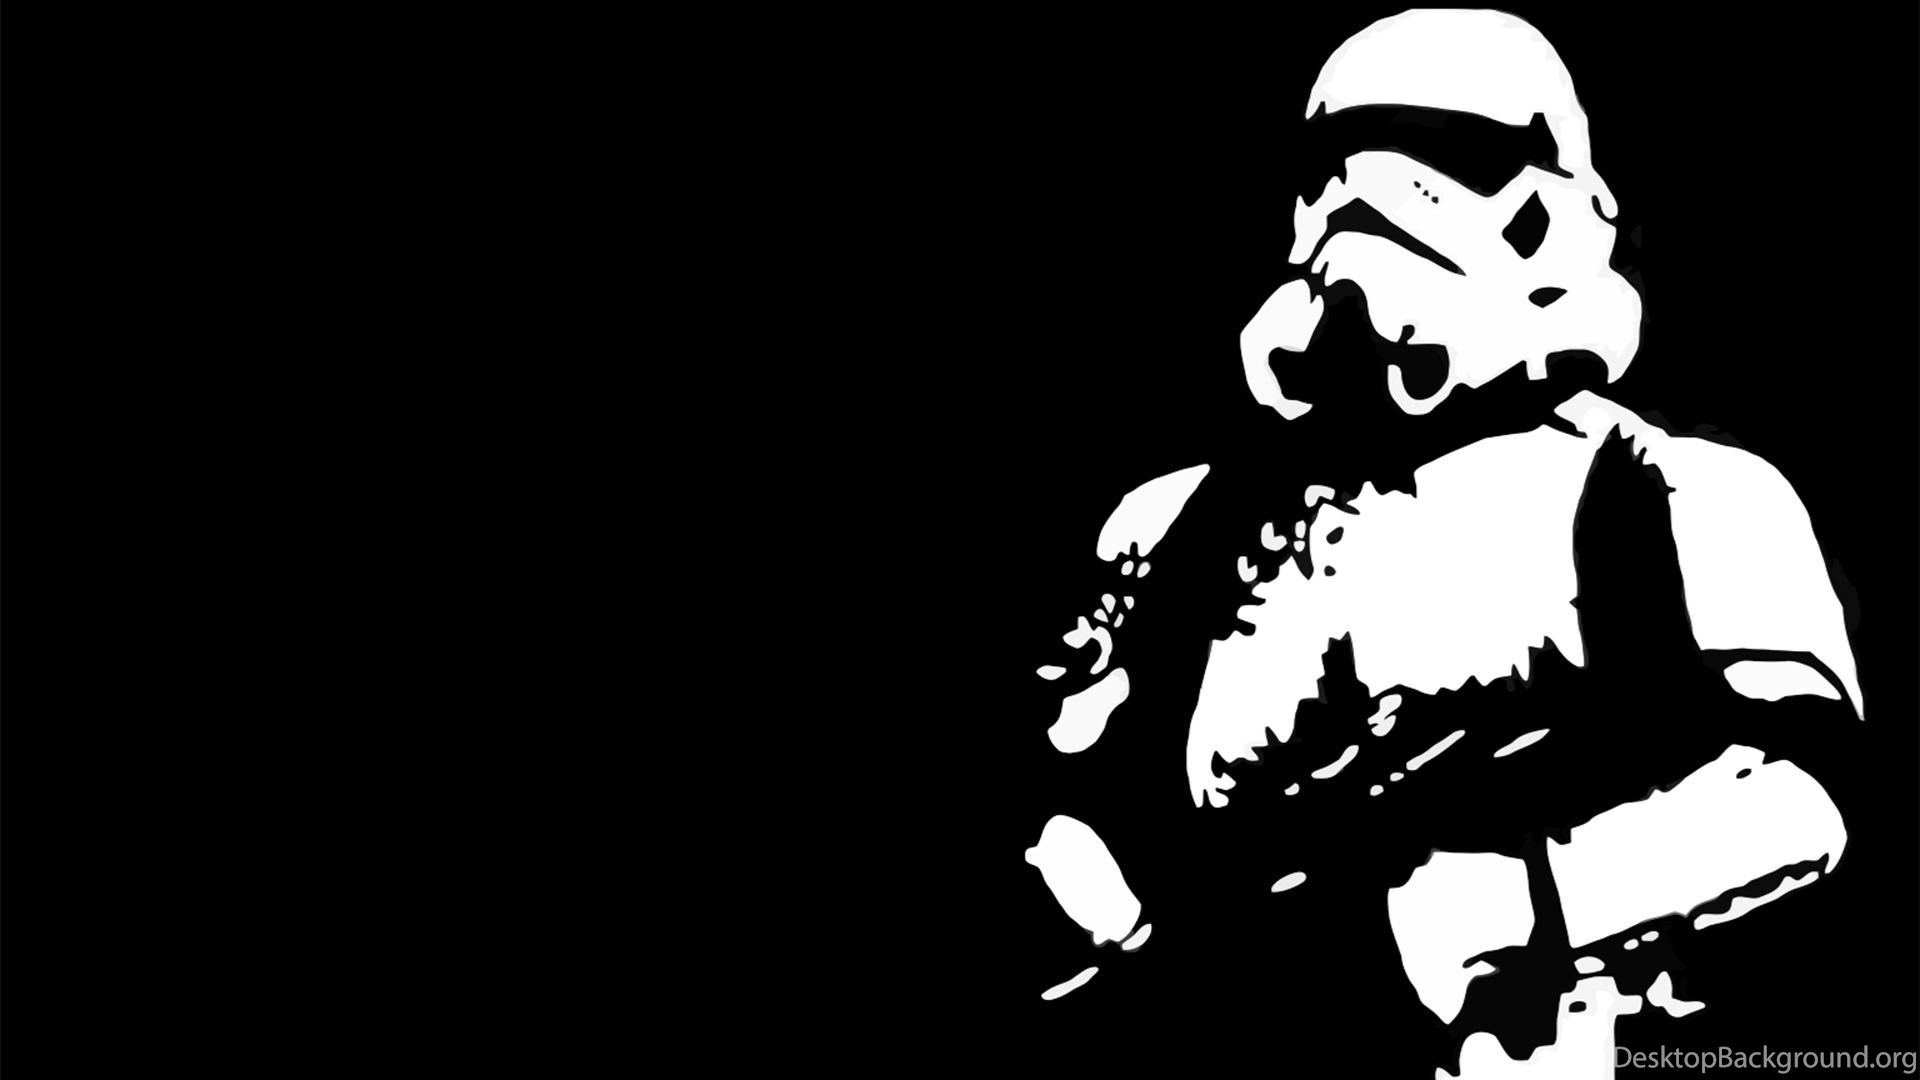 Star Wars Wallpapers Hd 1080p Wallpapers